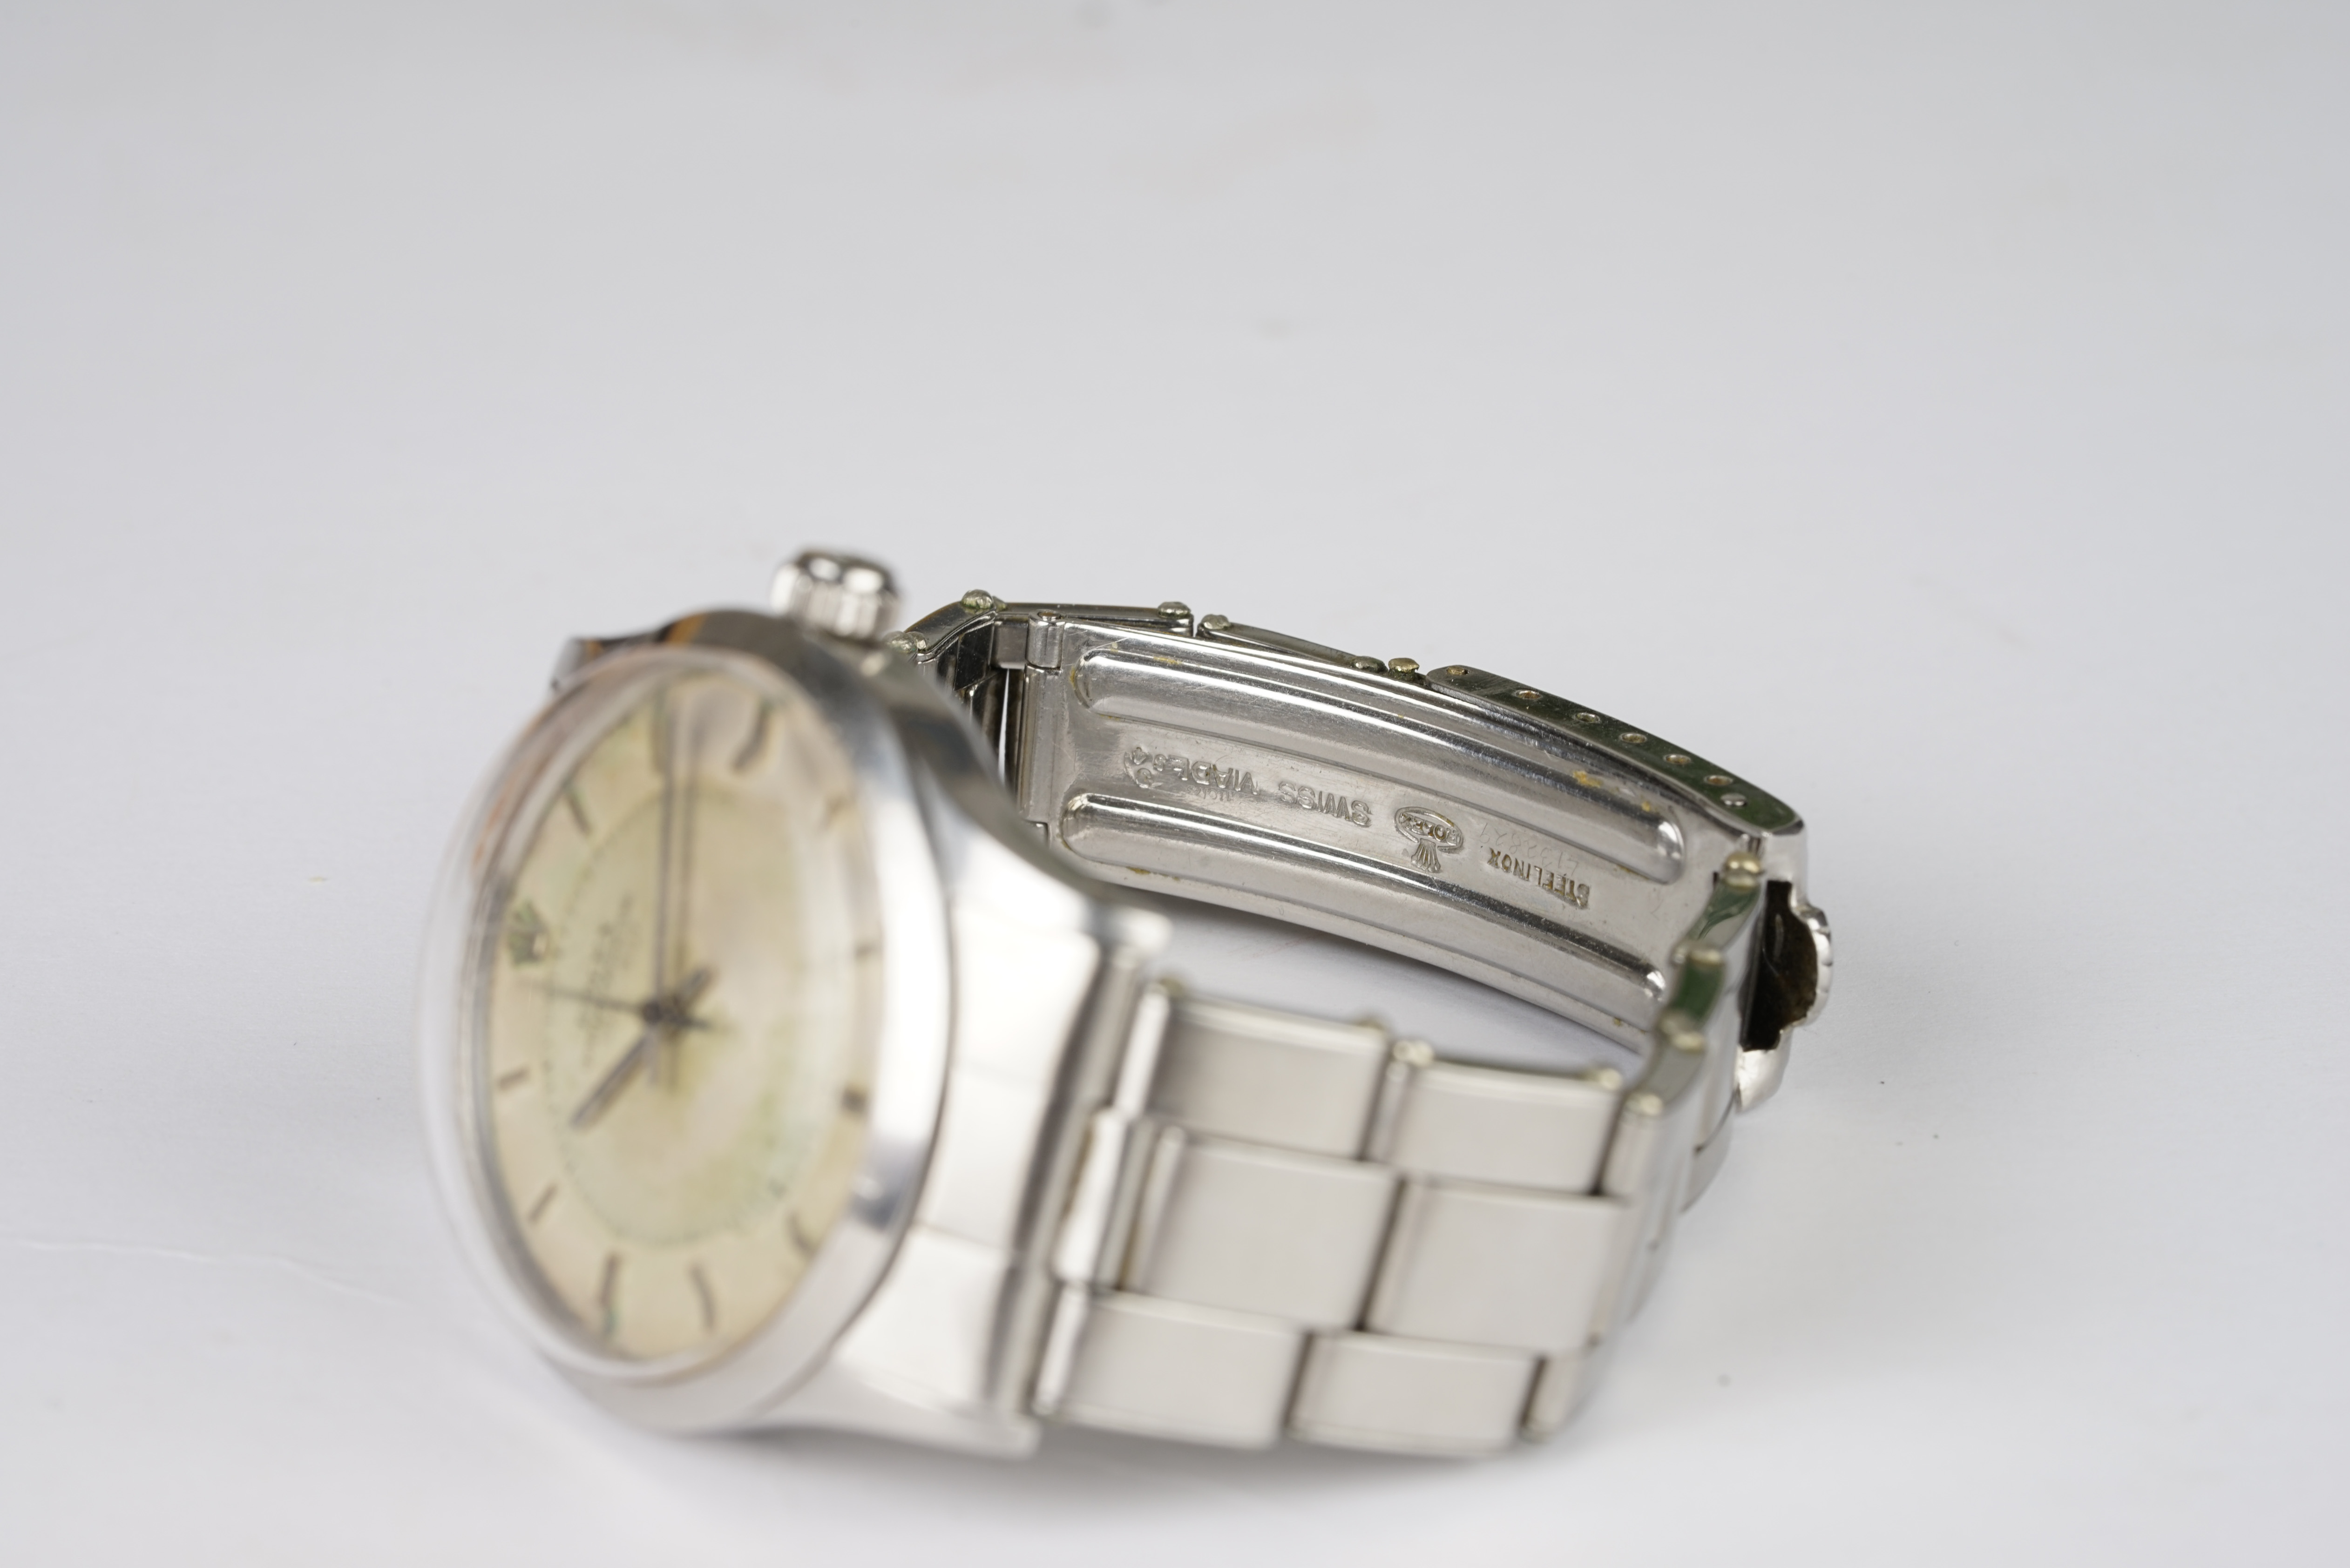 RARE GENTLEMENS ROLEX OYSTER PERPETUAL 'DEPTH RATING' 50M = 165FT WRISTWATCH REF. 6532 CIRCA 1955, - Image 3 of 4